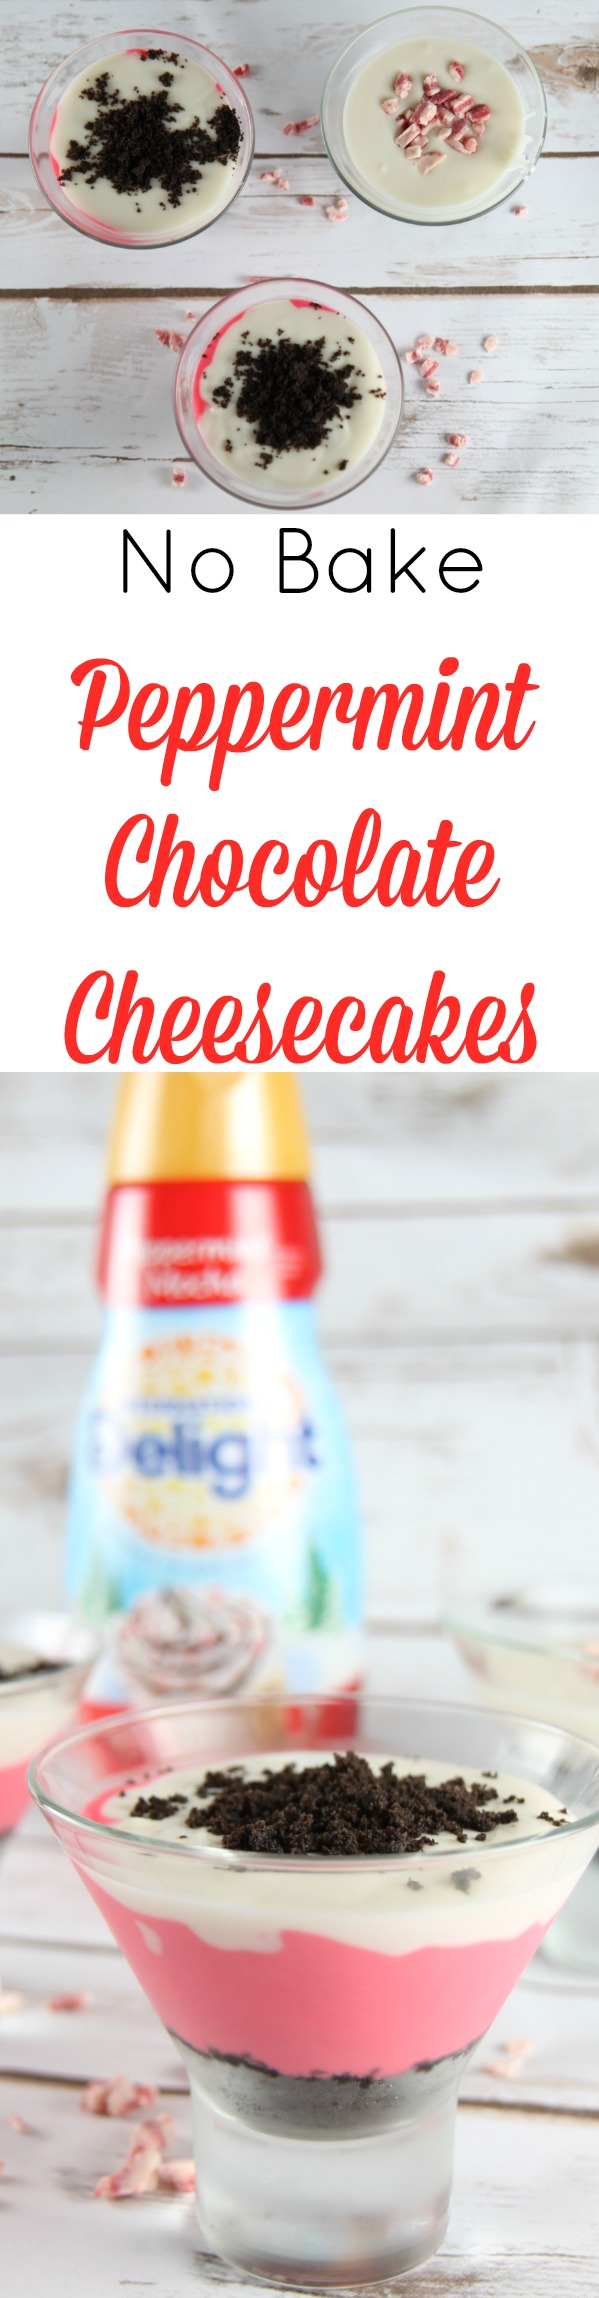 Easy Peppermint Chocolate Cheesecakes